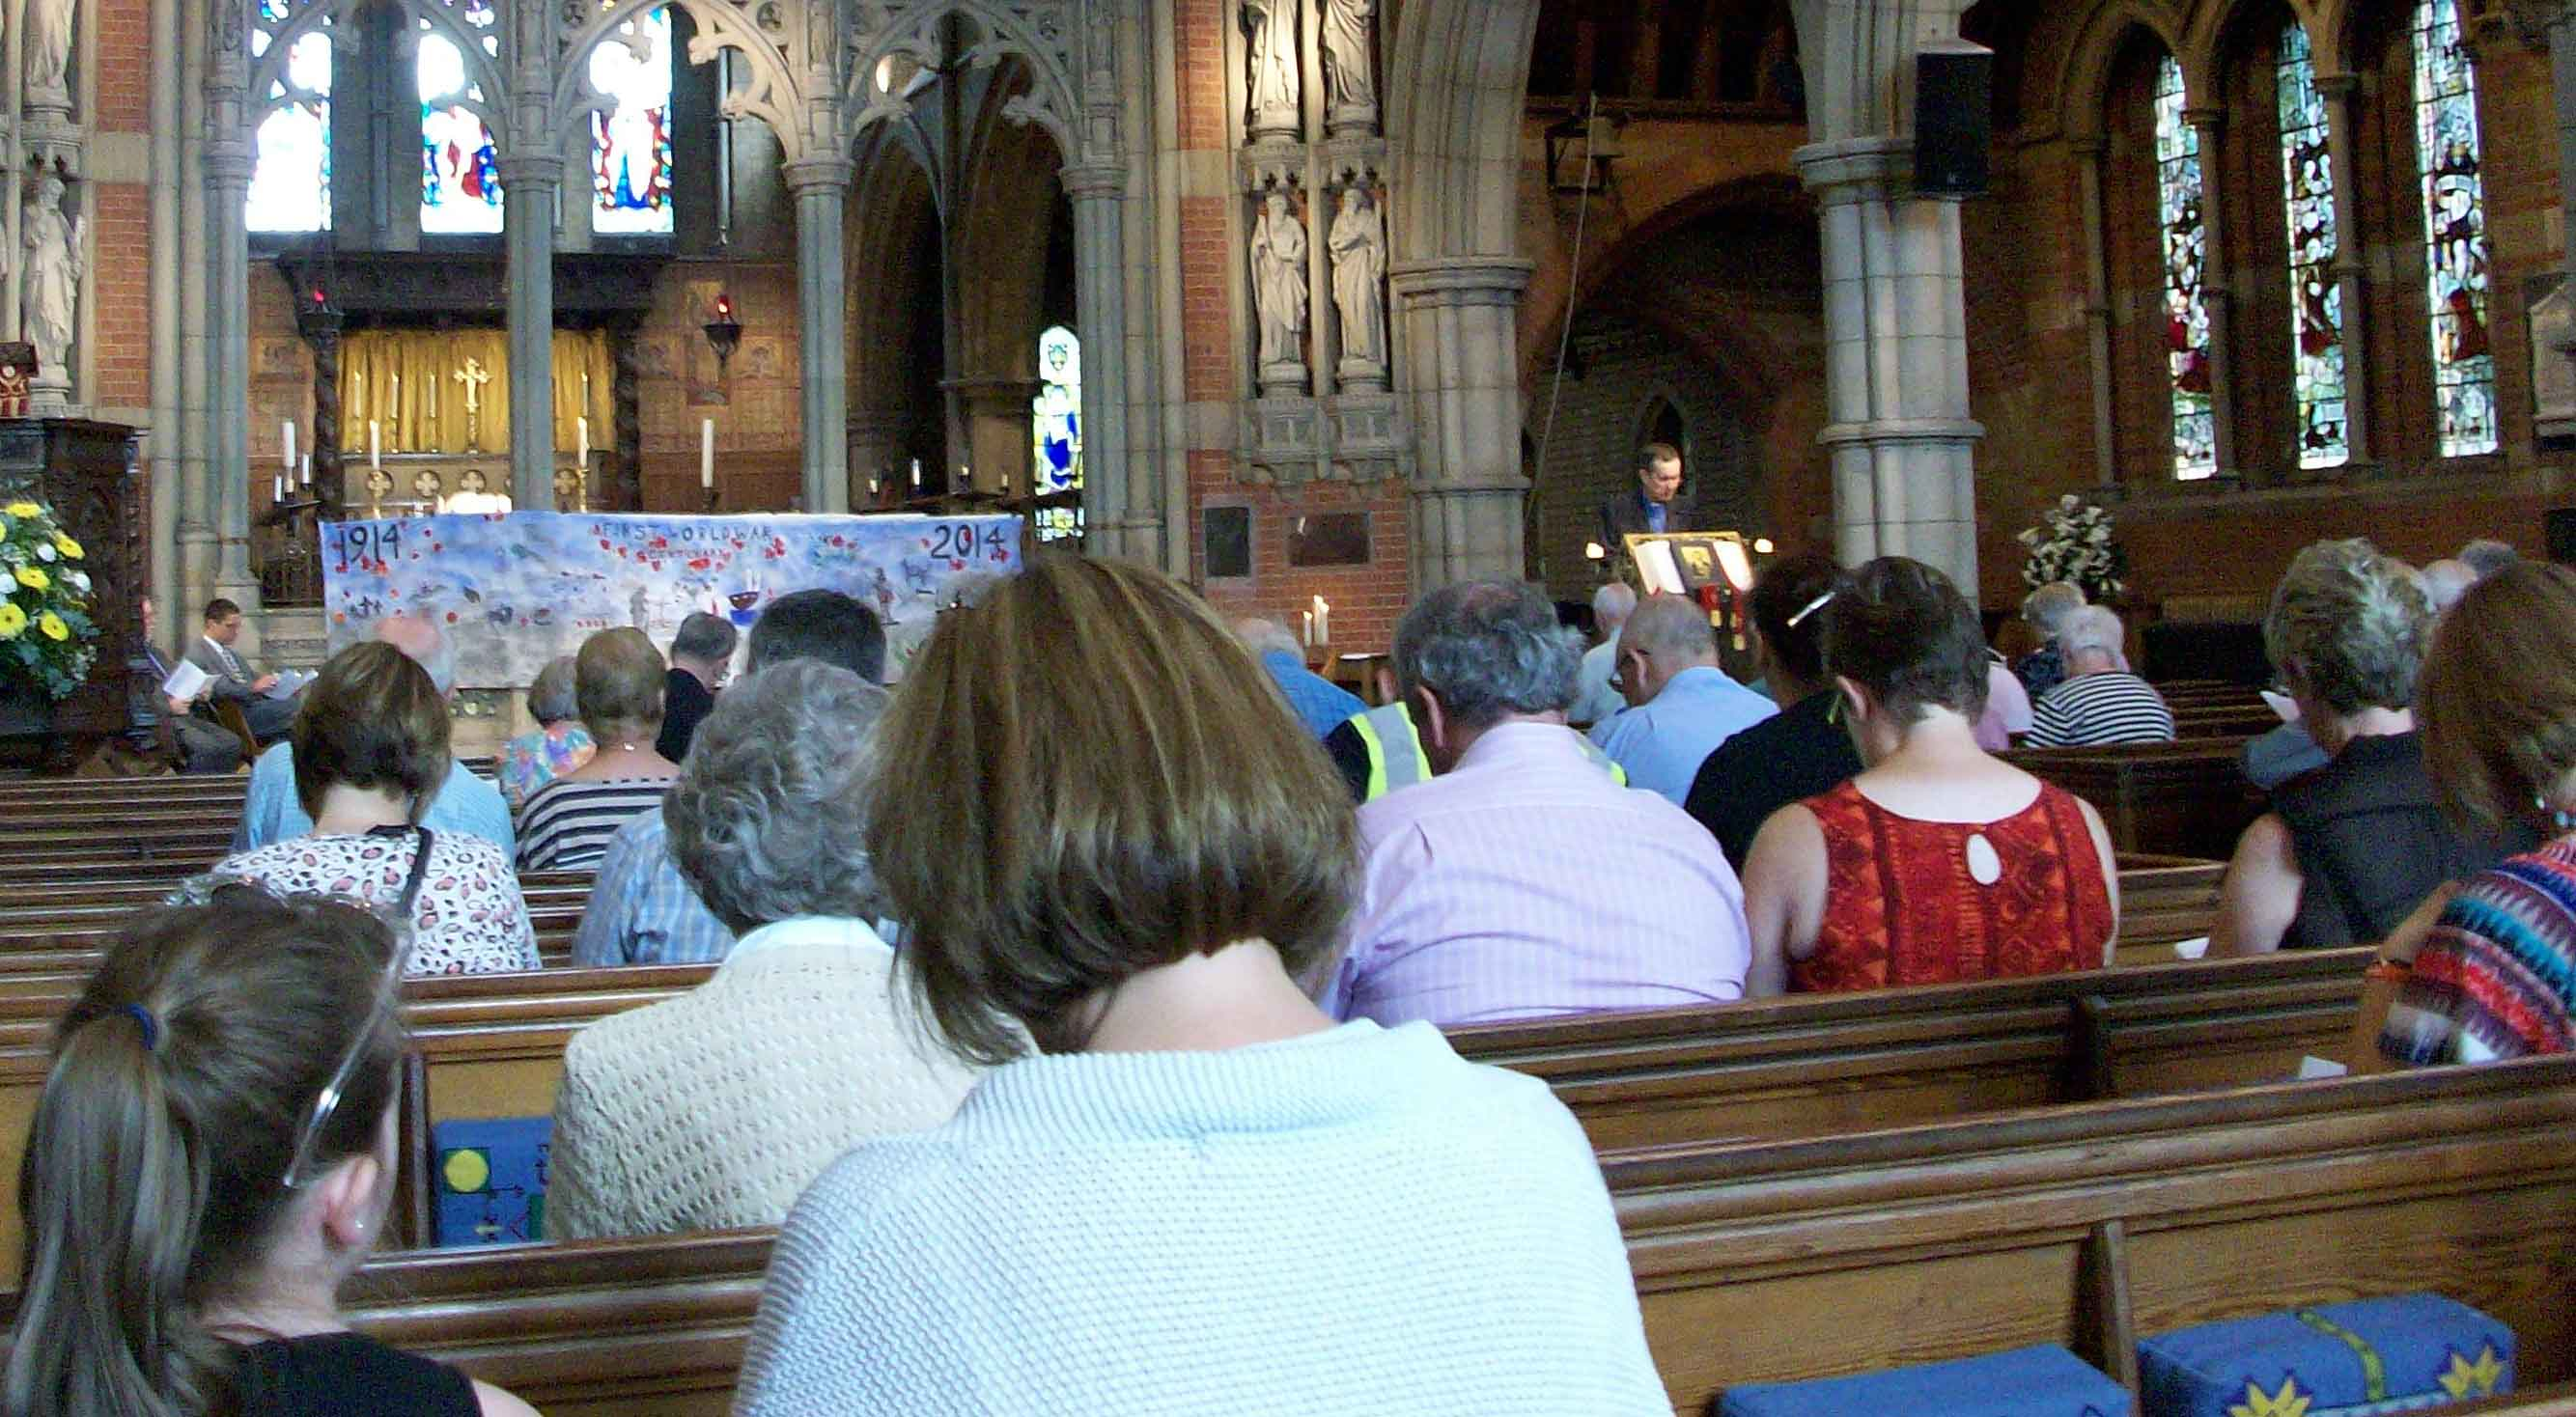 Commemoration Centenary of WW1, St John's Church, Sidcup